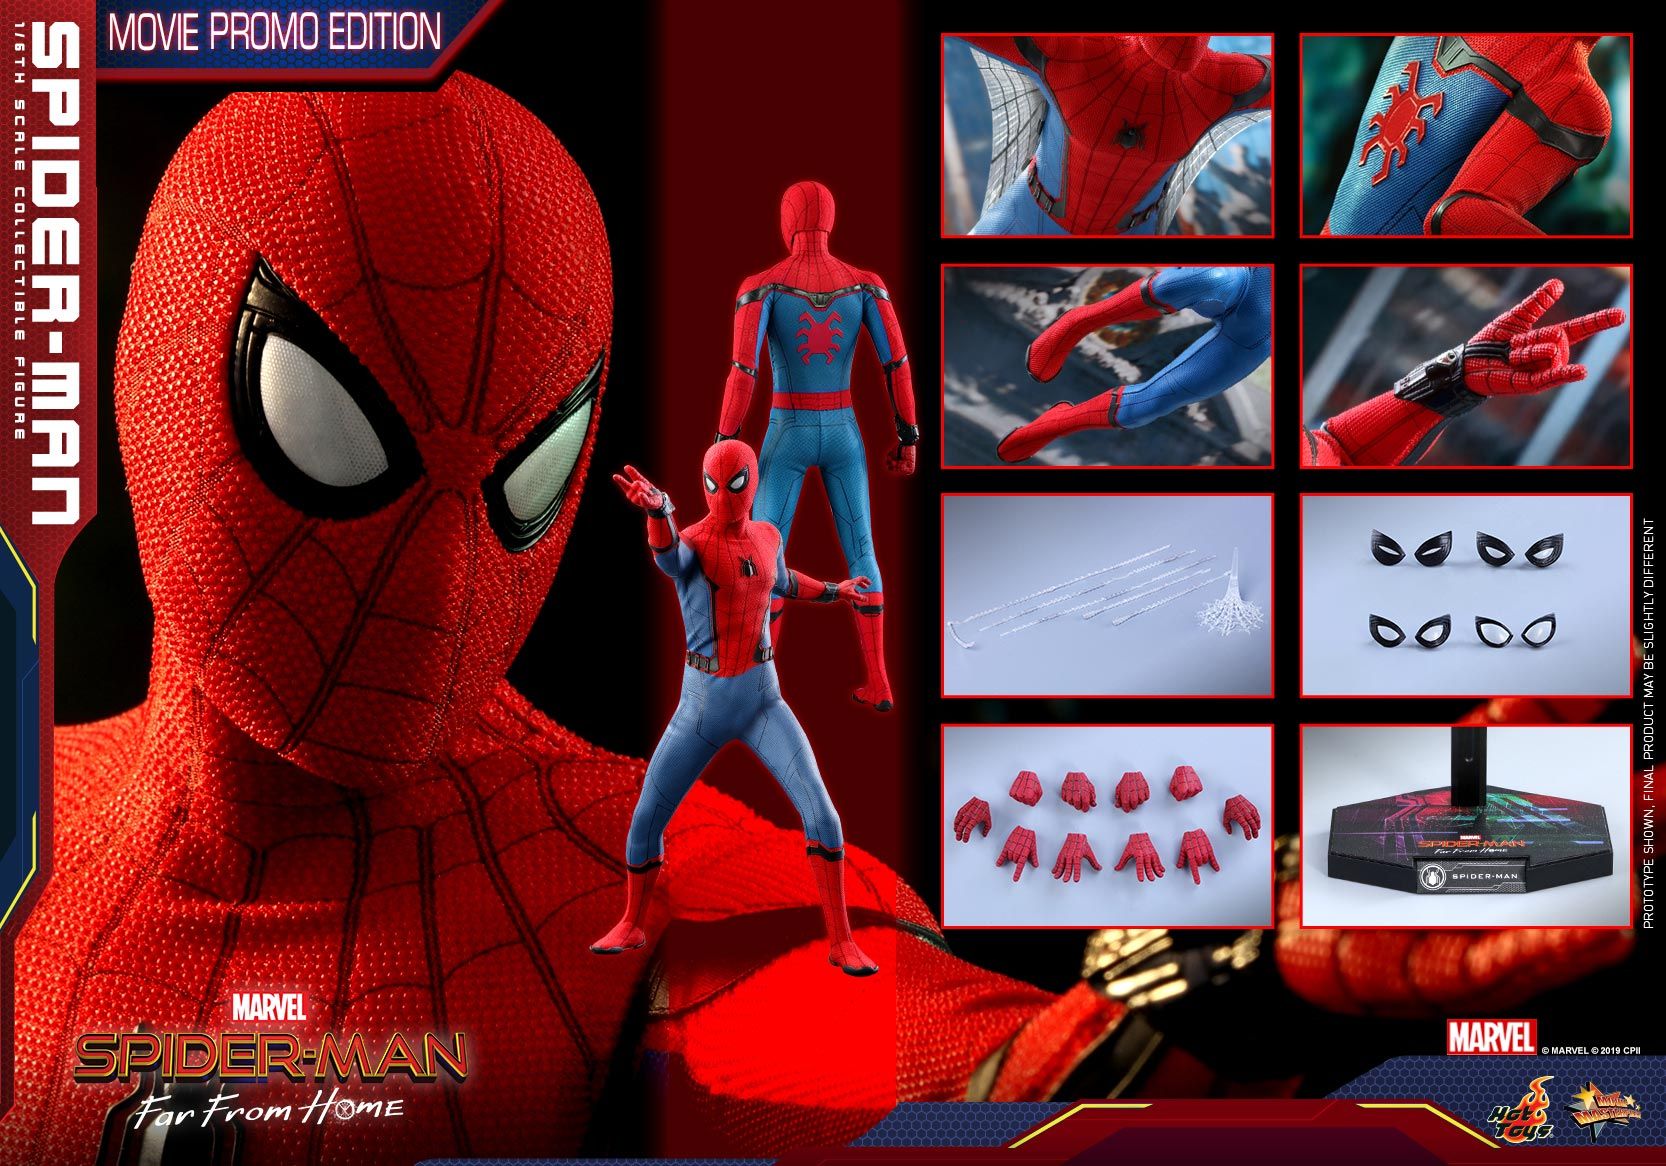 Hot-Toys---SMFFH---Spider-Man-(Movie-Promo-Edition)-collectible-figure_PR17